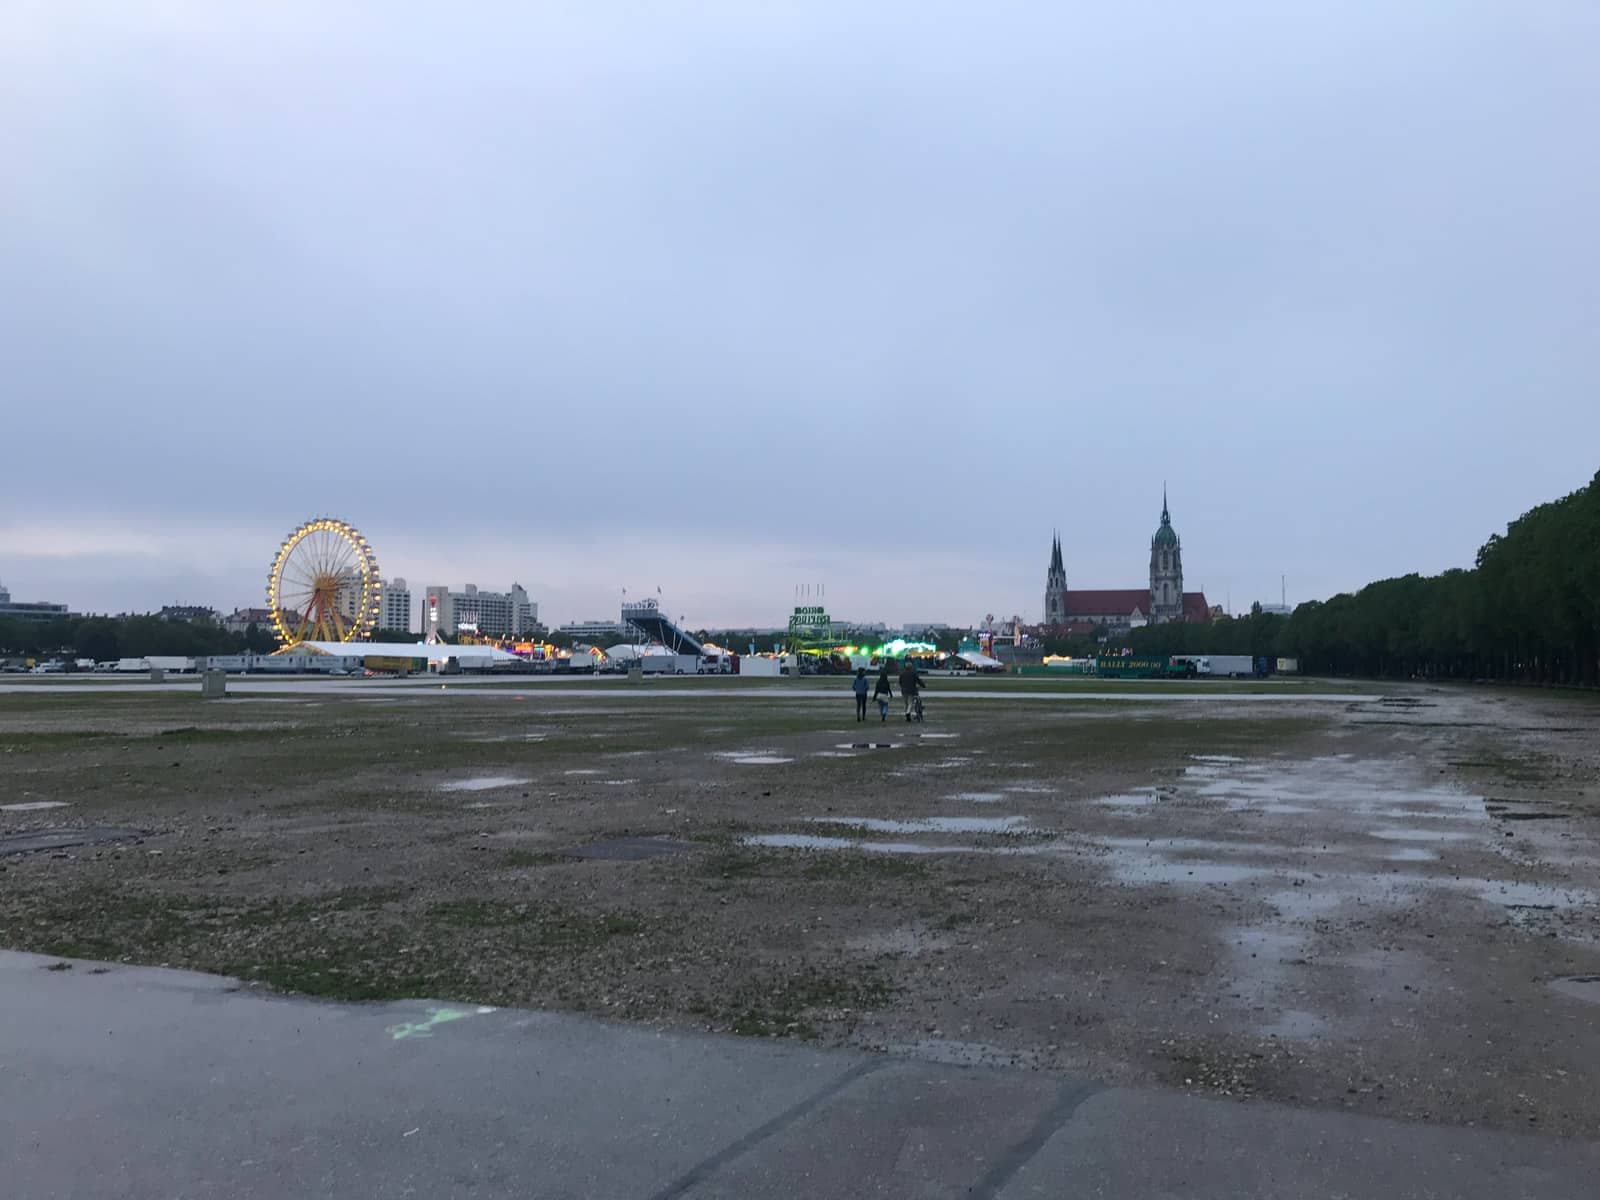 An open park area in the evening. The grass is wet from the rain. In the distance is a temporary festival ground set up with a ferris wheel and tents